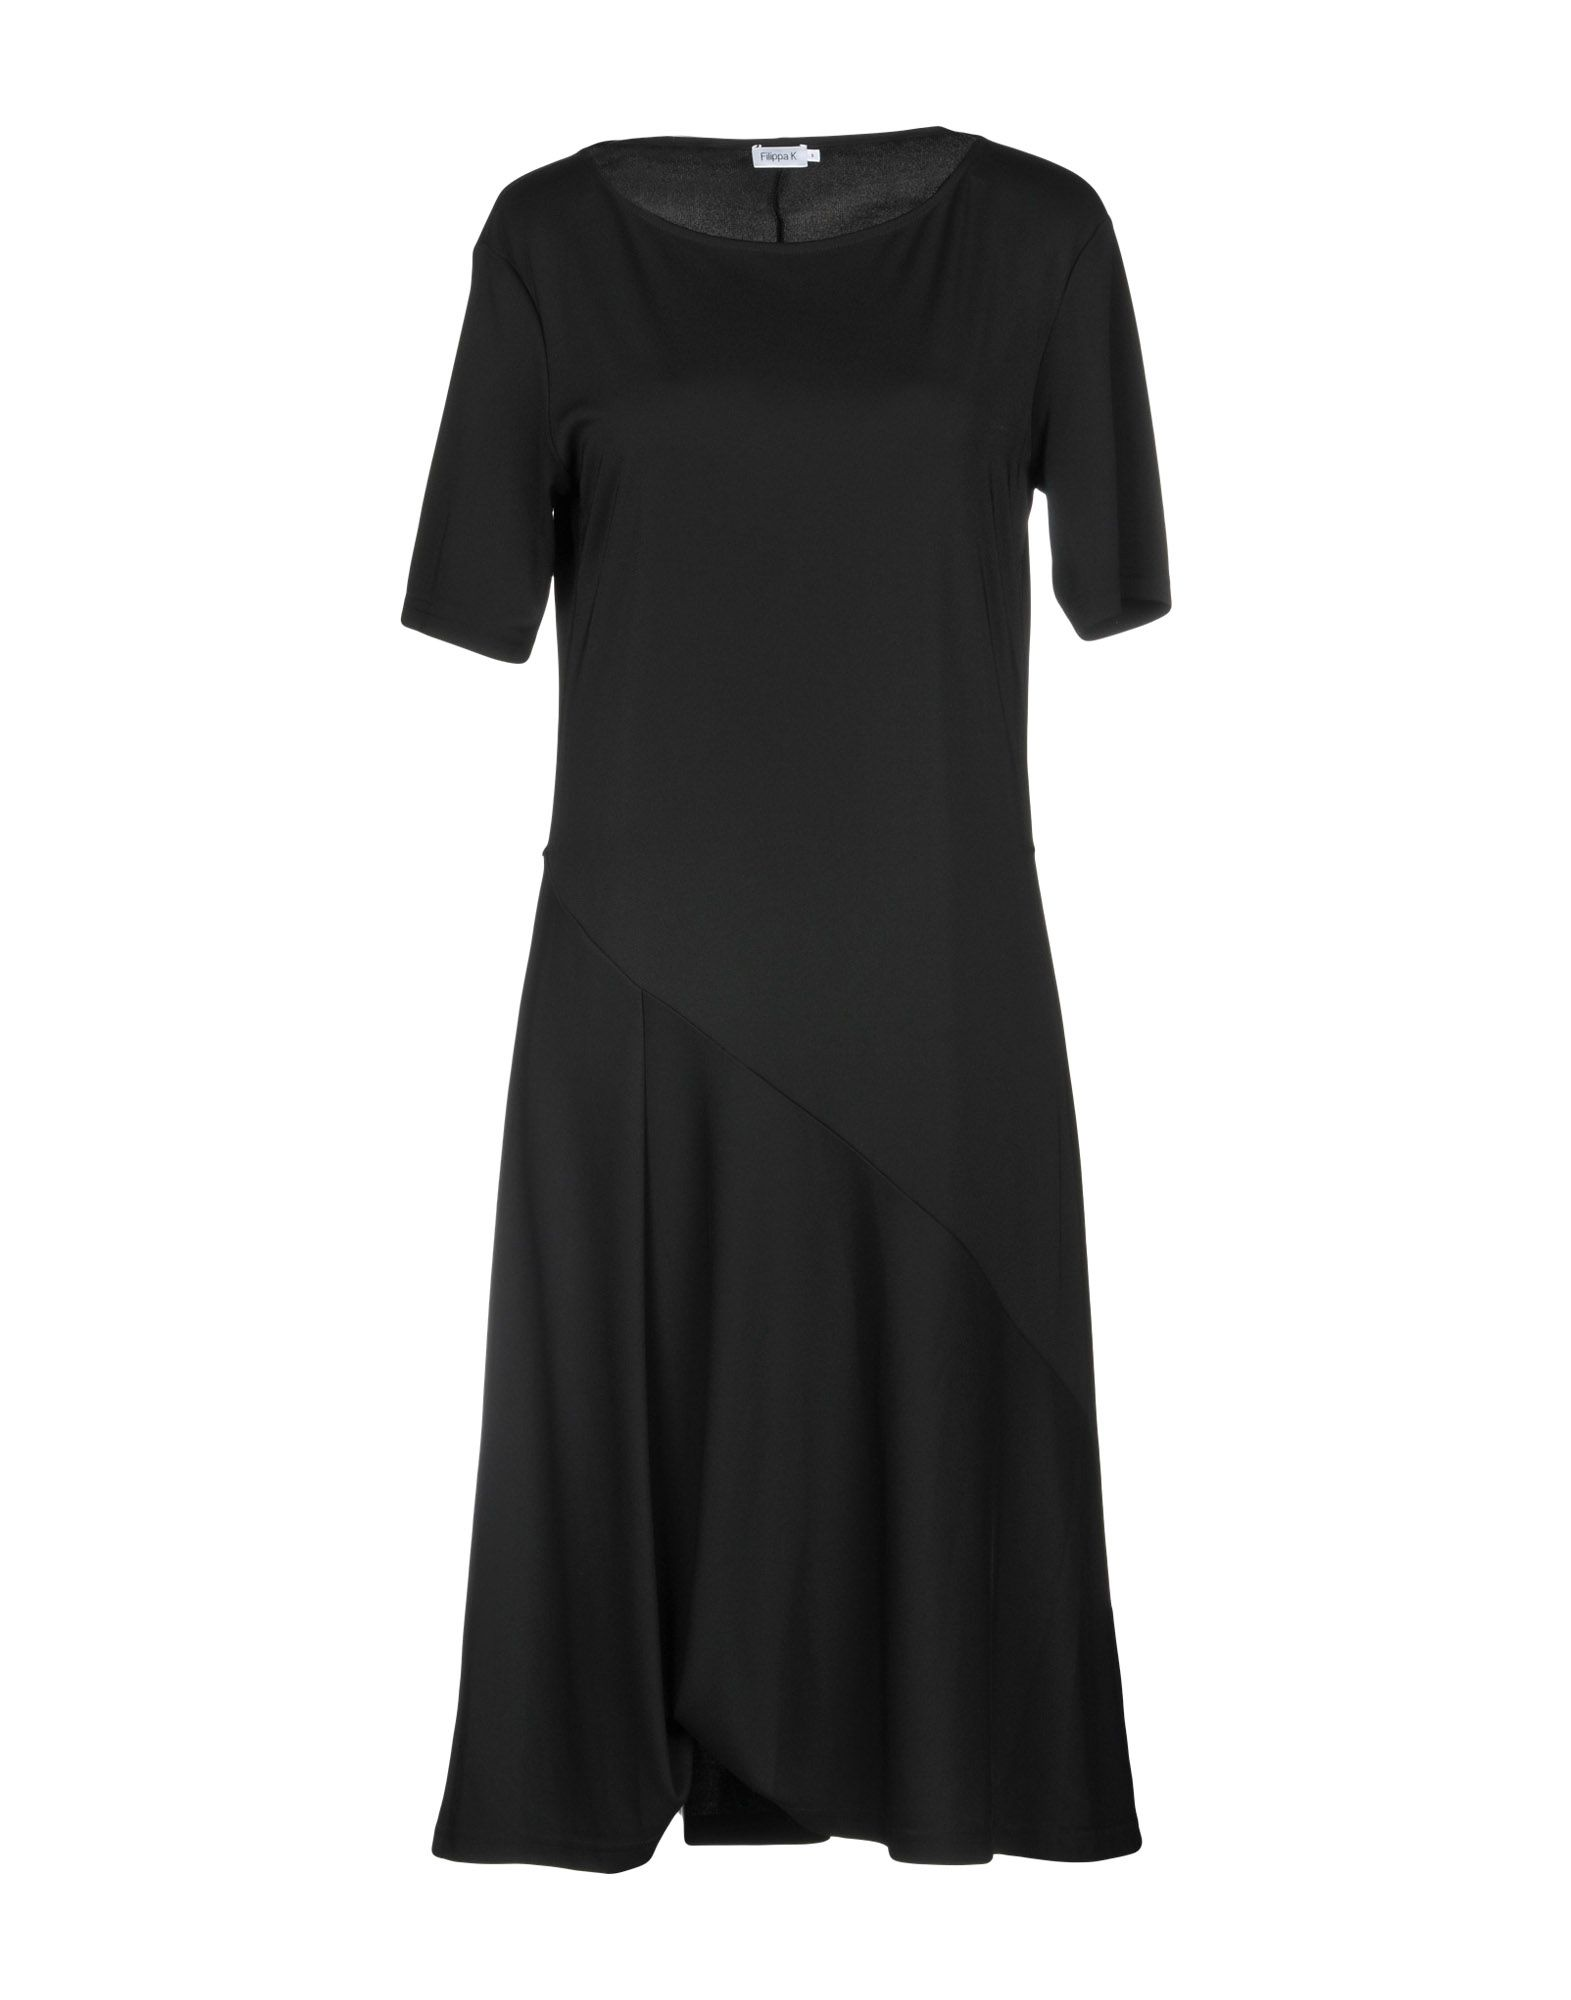 FILIPPA K Knee-Length Dress in Black